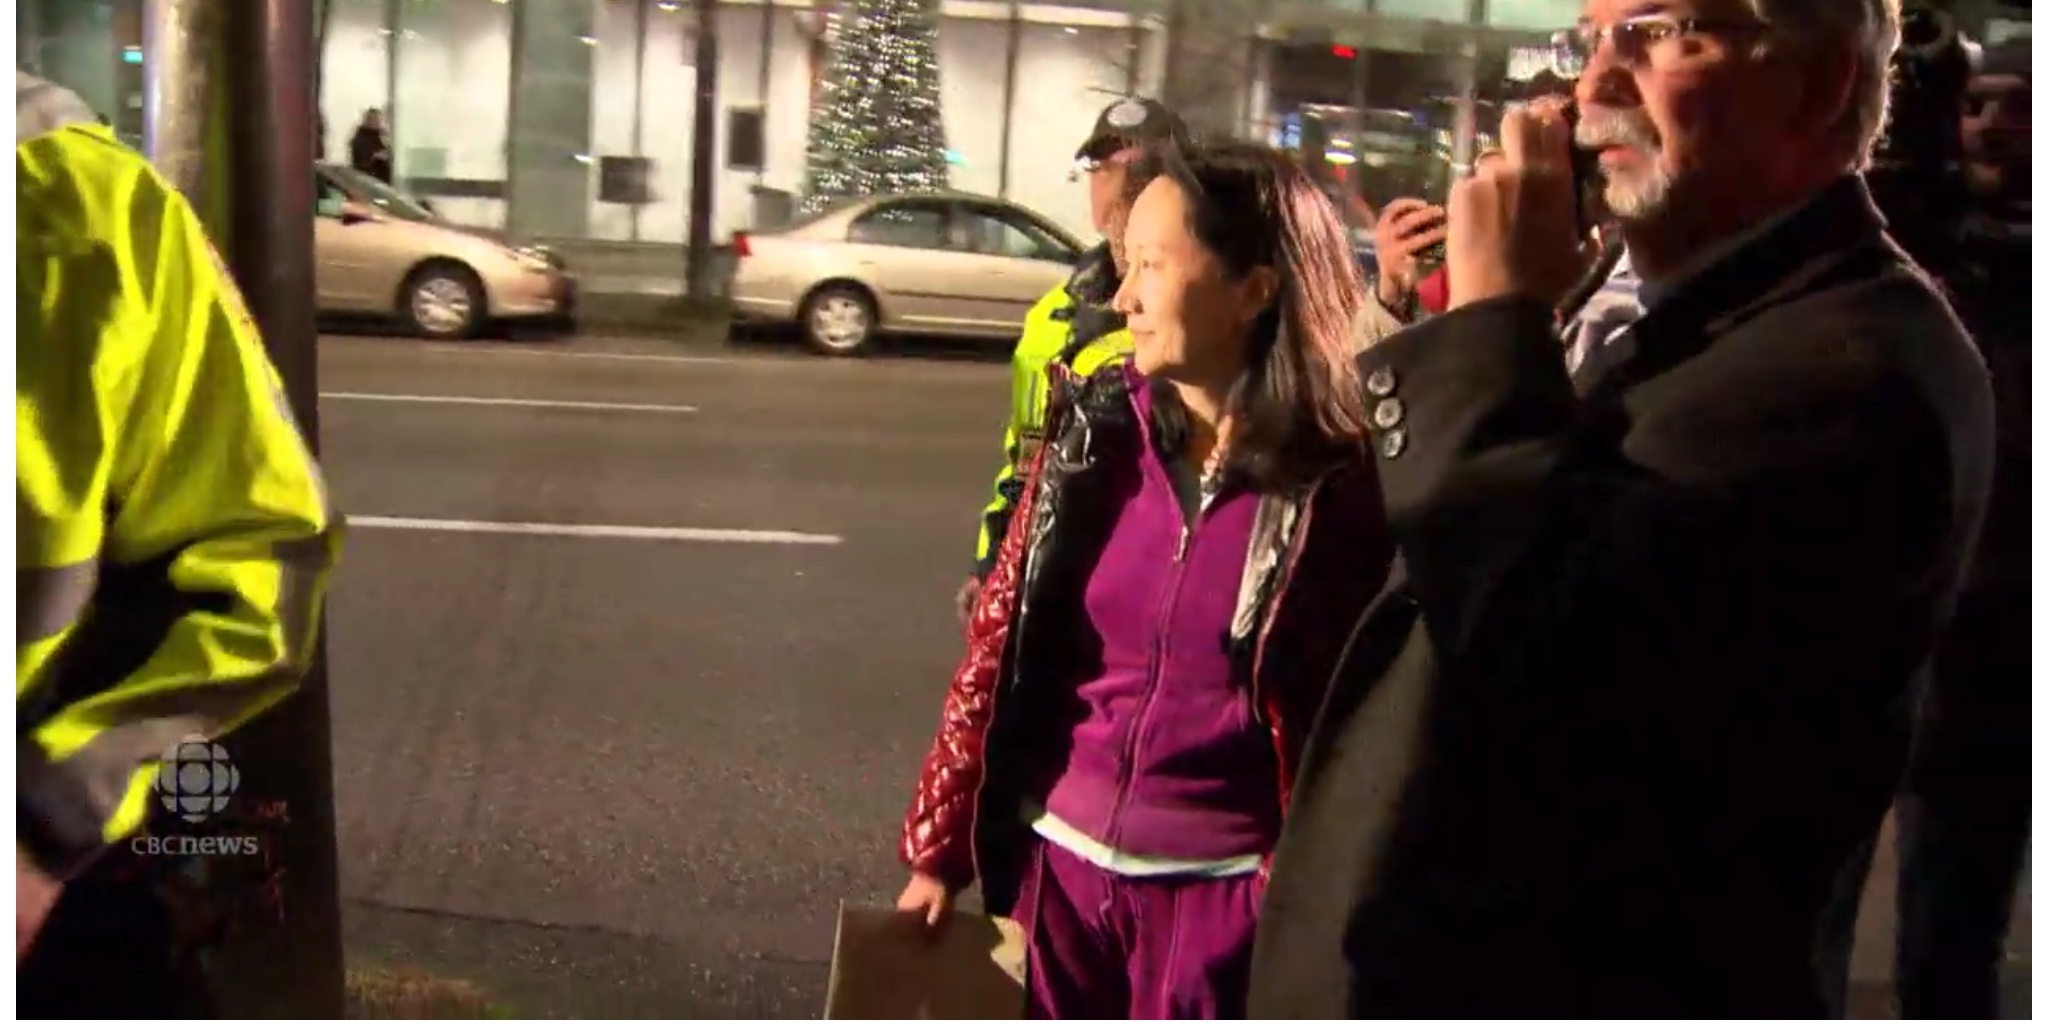 Huawei CFO Meng Wanzhou is led from a Vancouver, B.C. court after being granted $10 million bail. CBC News screenshot